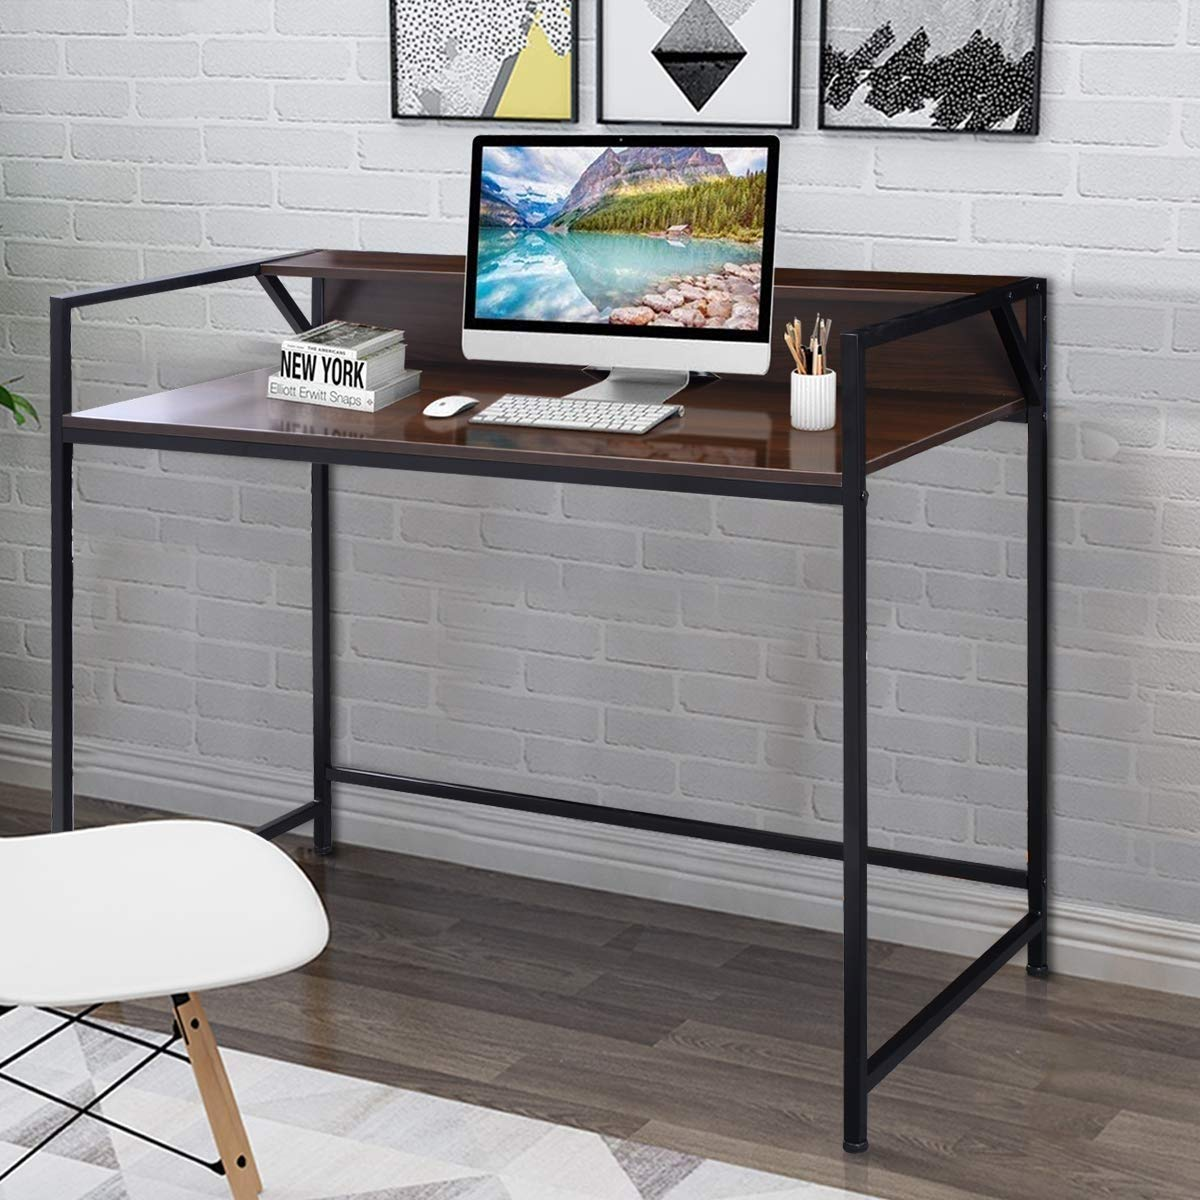 KING77777 Modern Simple and Unique Compact Design Simplistic Style Desk Computer Office Premium Quality Material Furniture by KING77777 (Image #3)